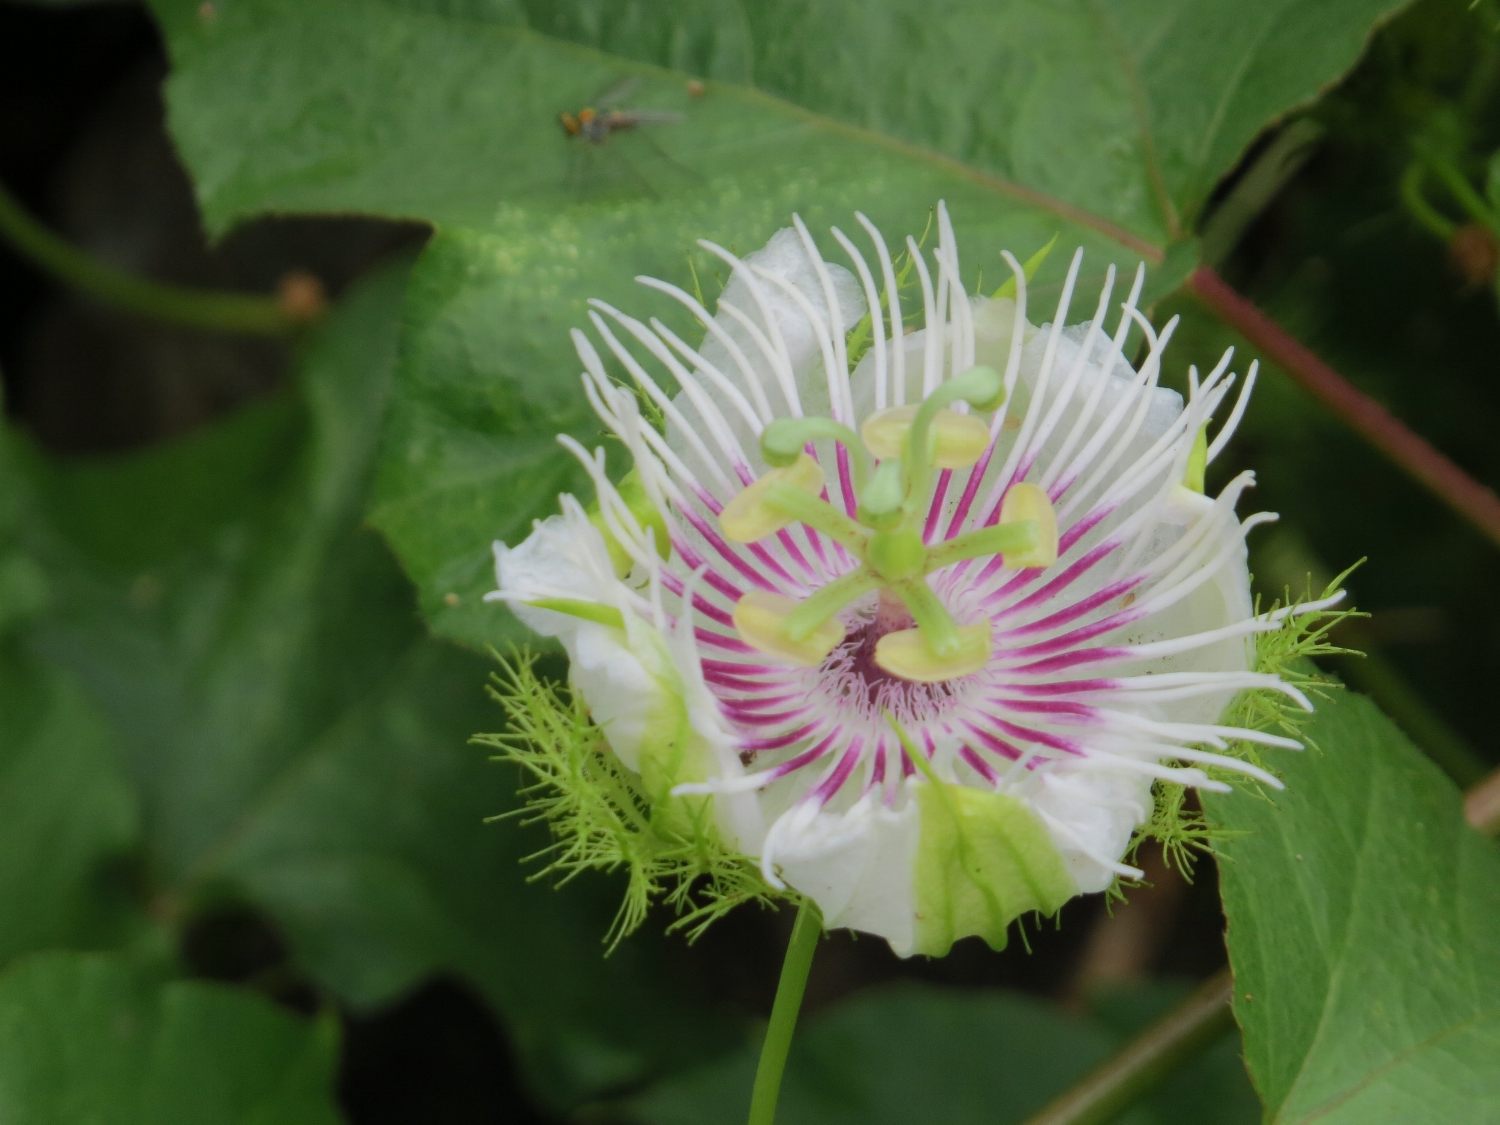 Passion flower, maybe?